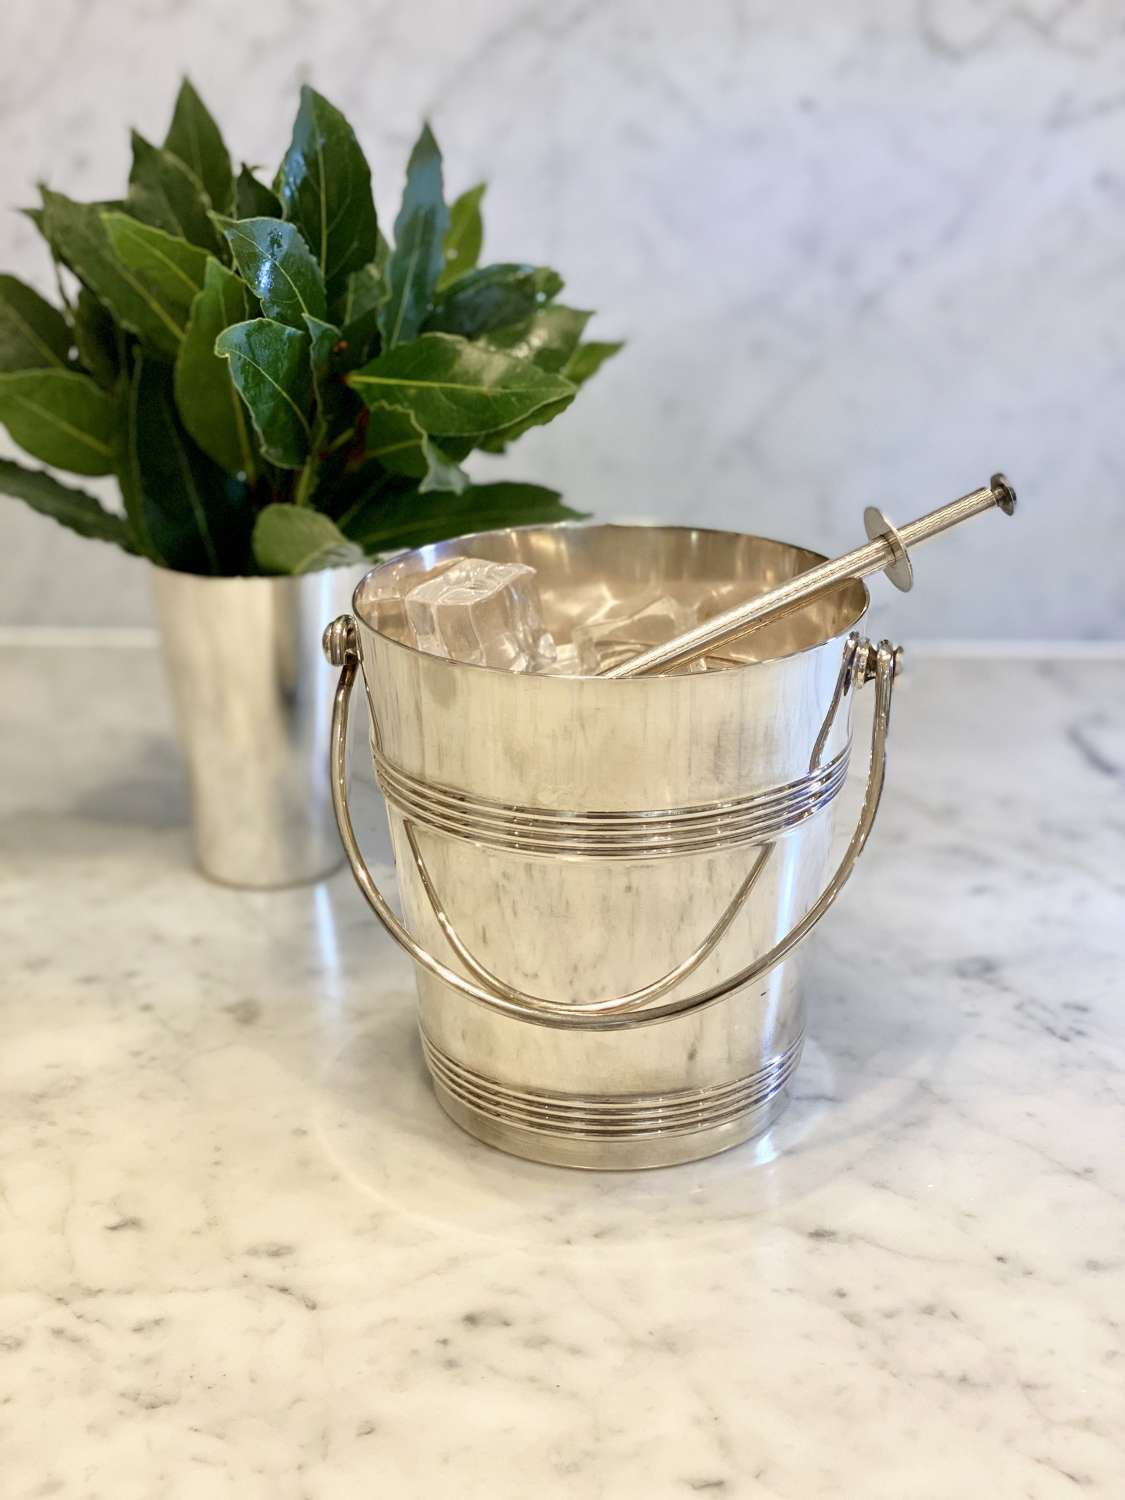 Art Deco Christofle ice bucket with matching ice grabber tongs